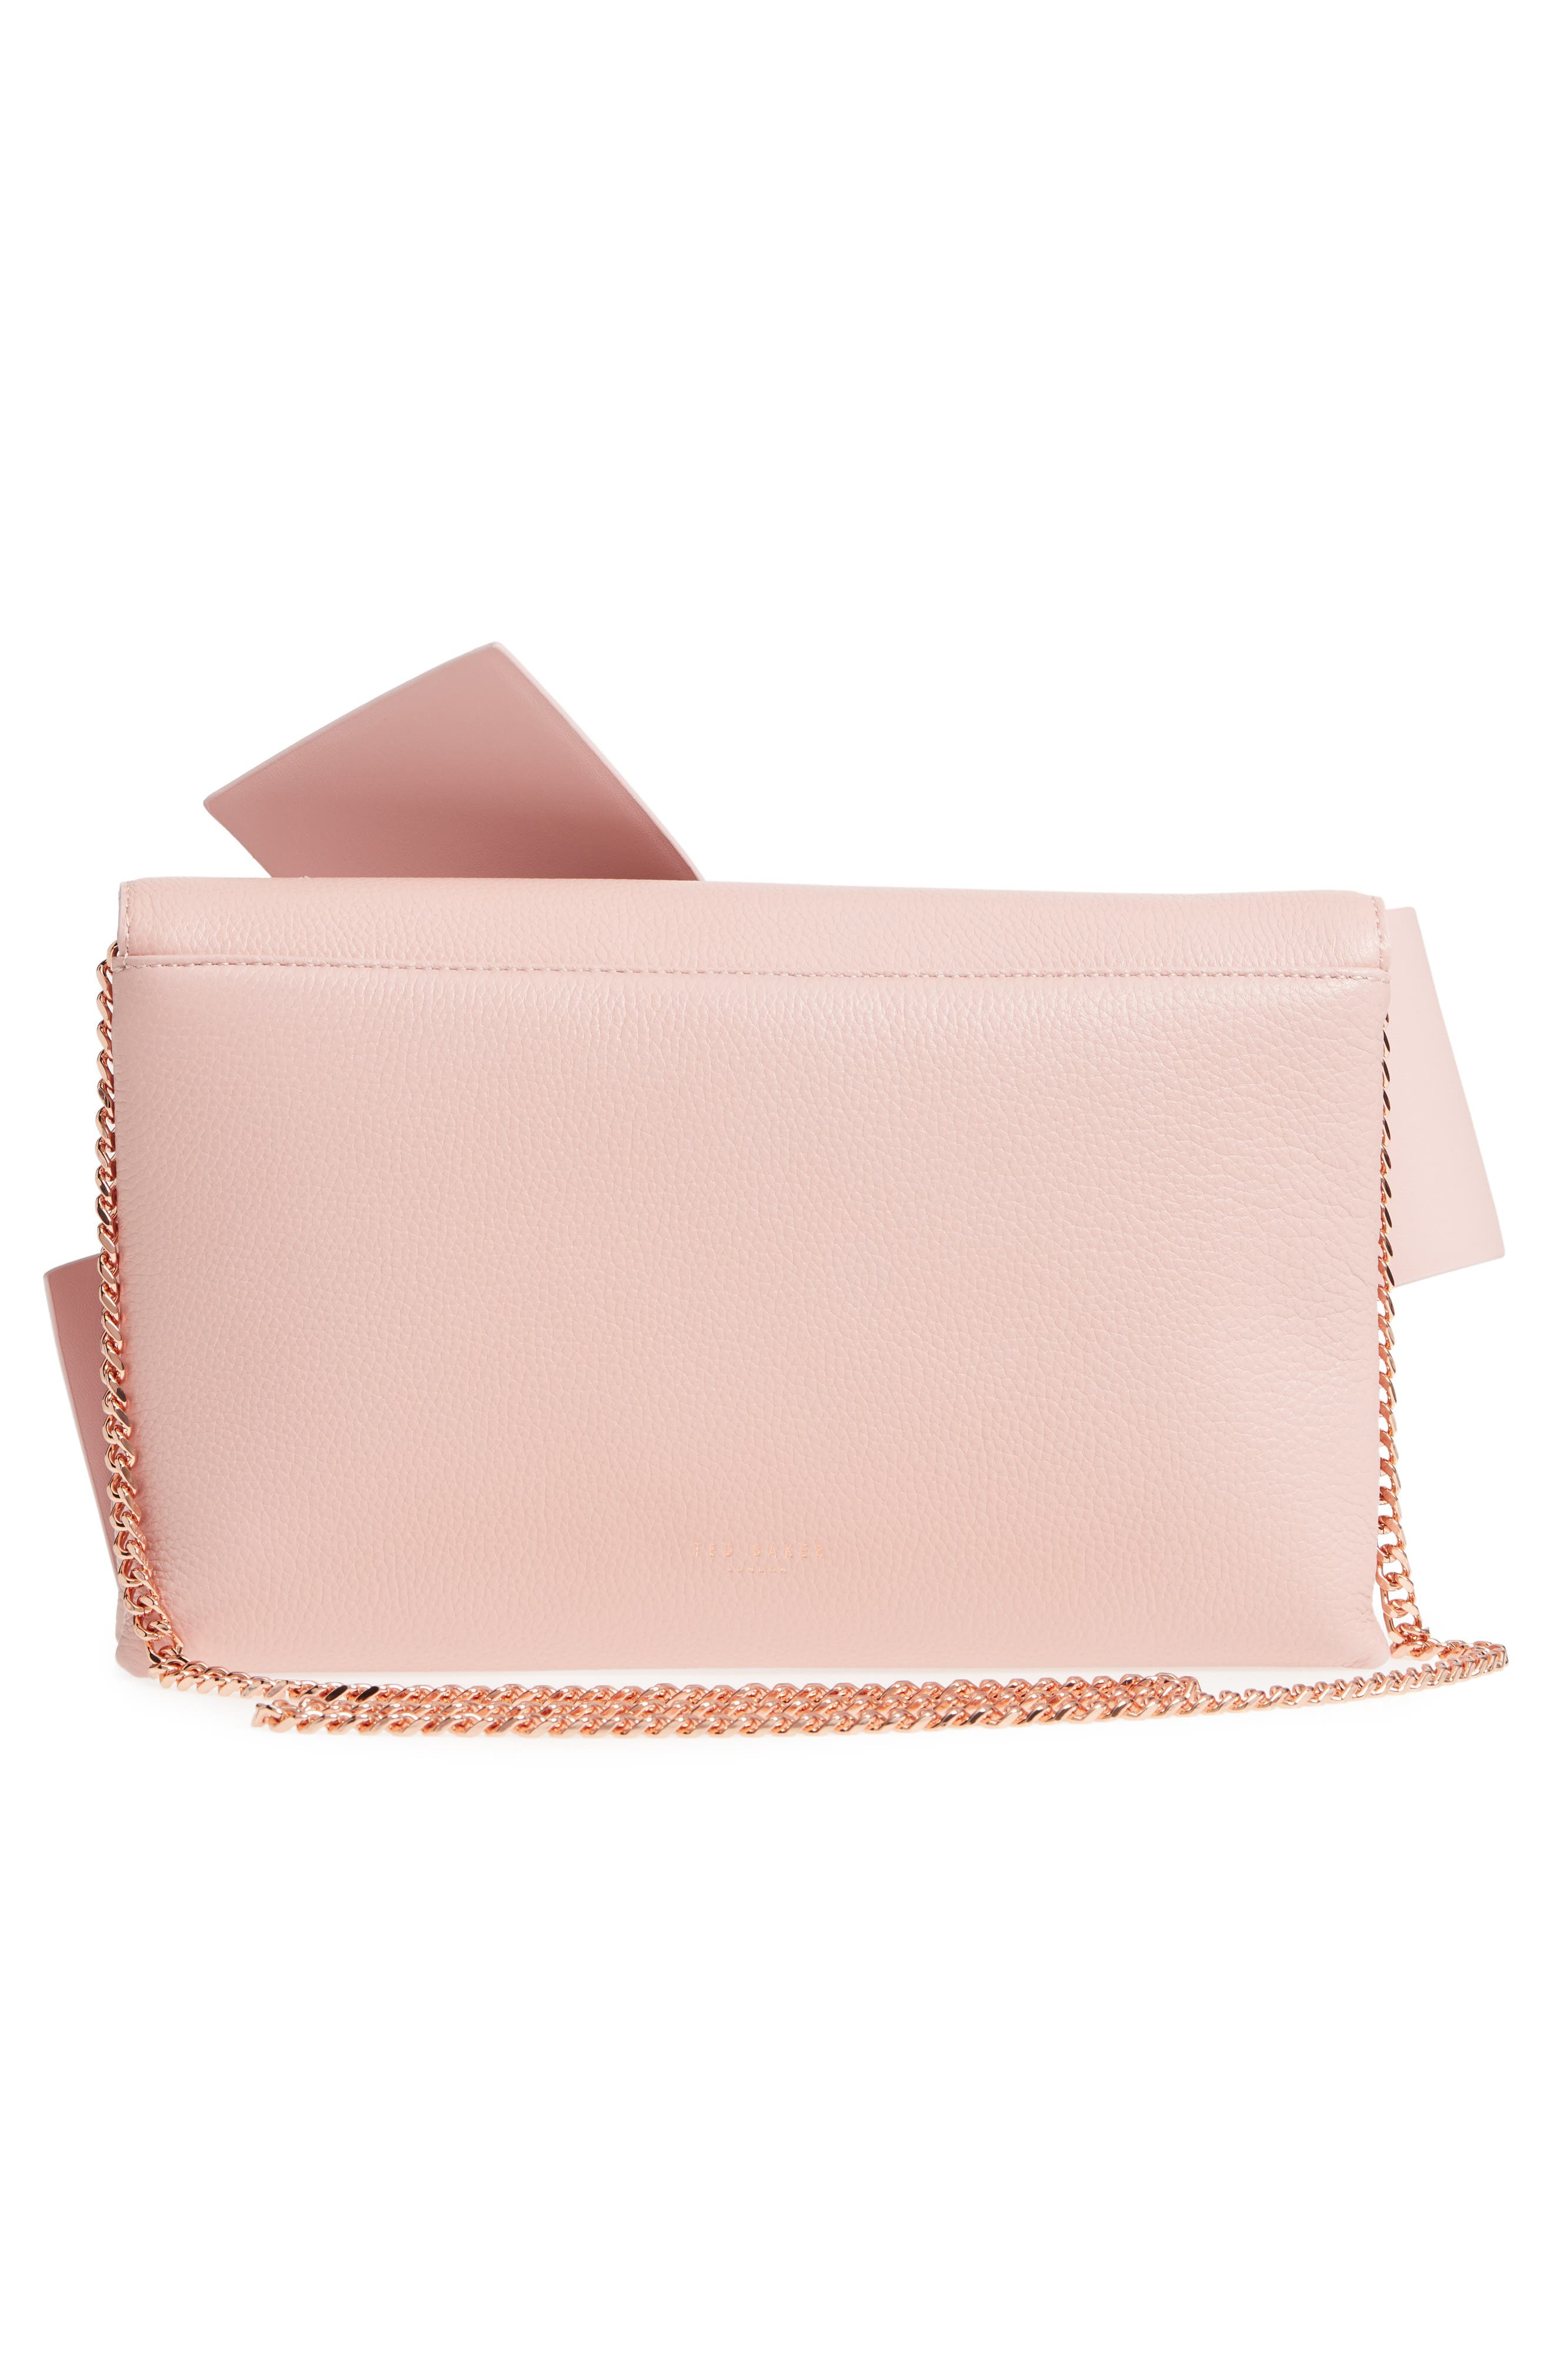 Knotted Bow Leather Clutch,                             Alternate thumbnail 13, color,